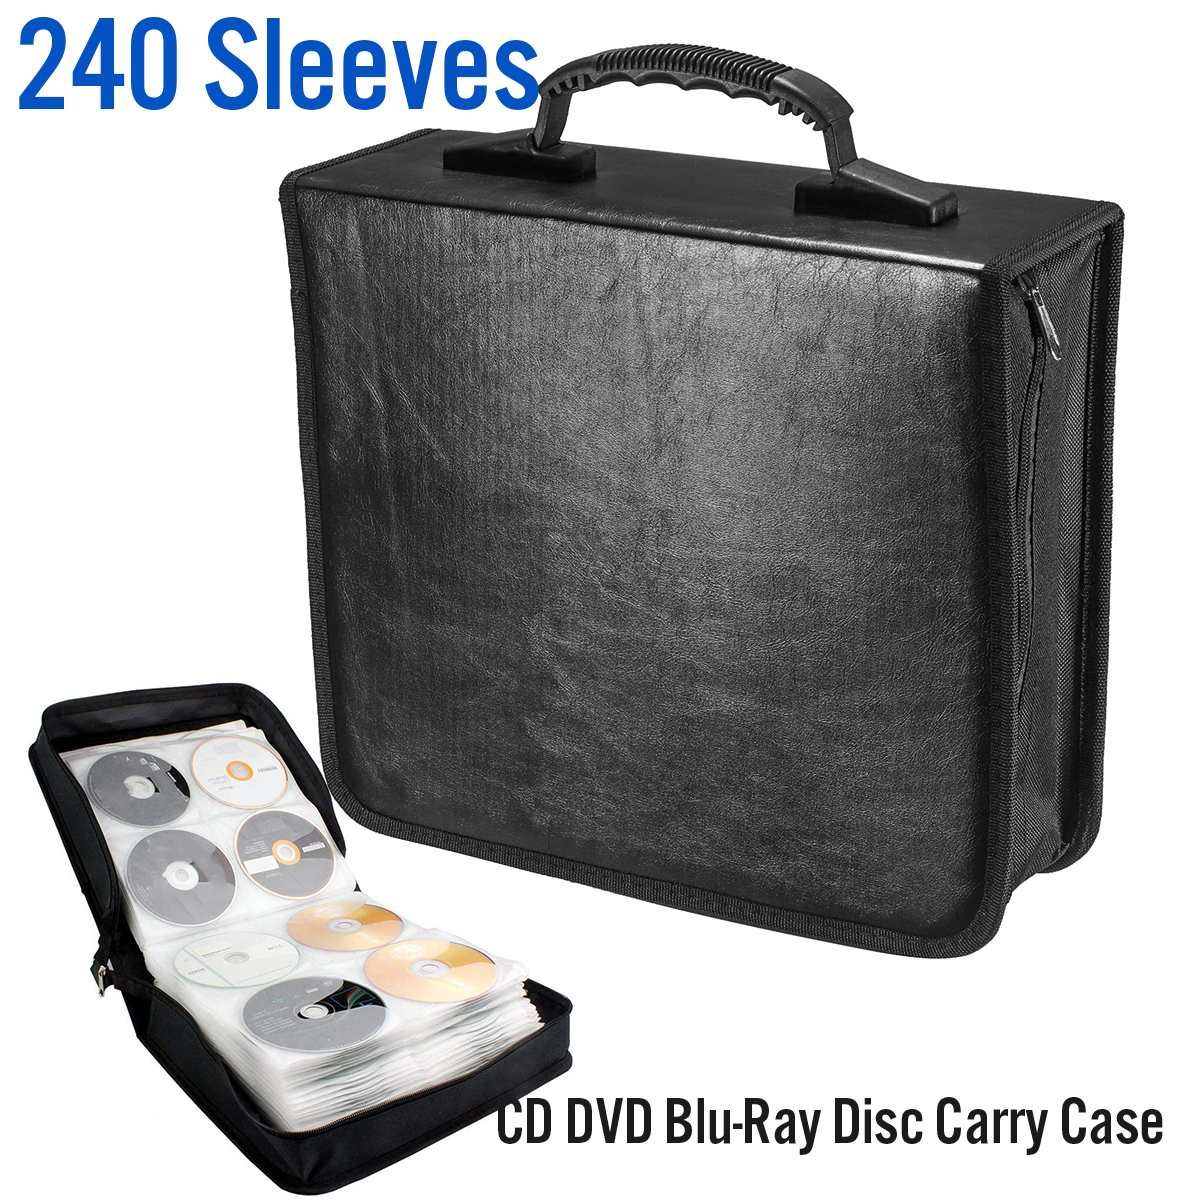 Disc CD DVD Case Storage Bag Album Collection Holder Box Carrying Organizer Disc Blu-Ray DJ Storage Wallets PU leather 240pcs